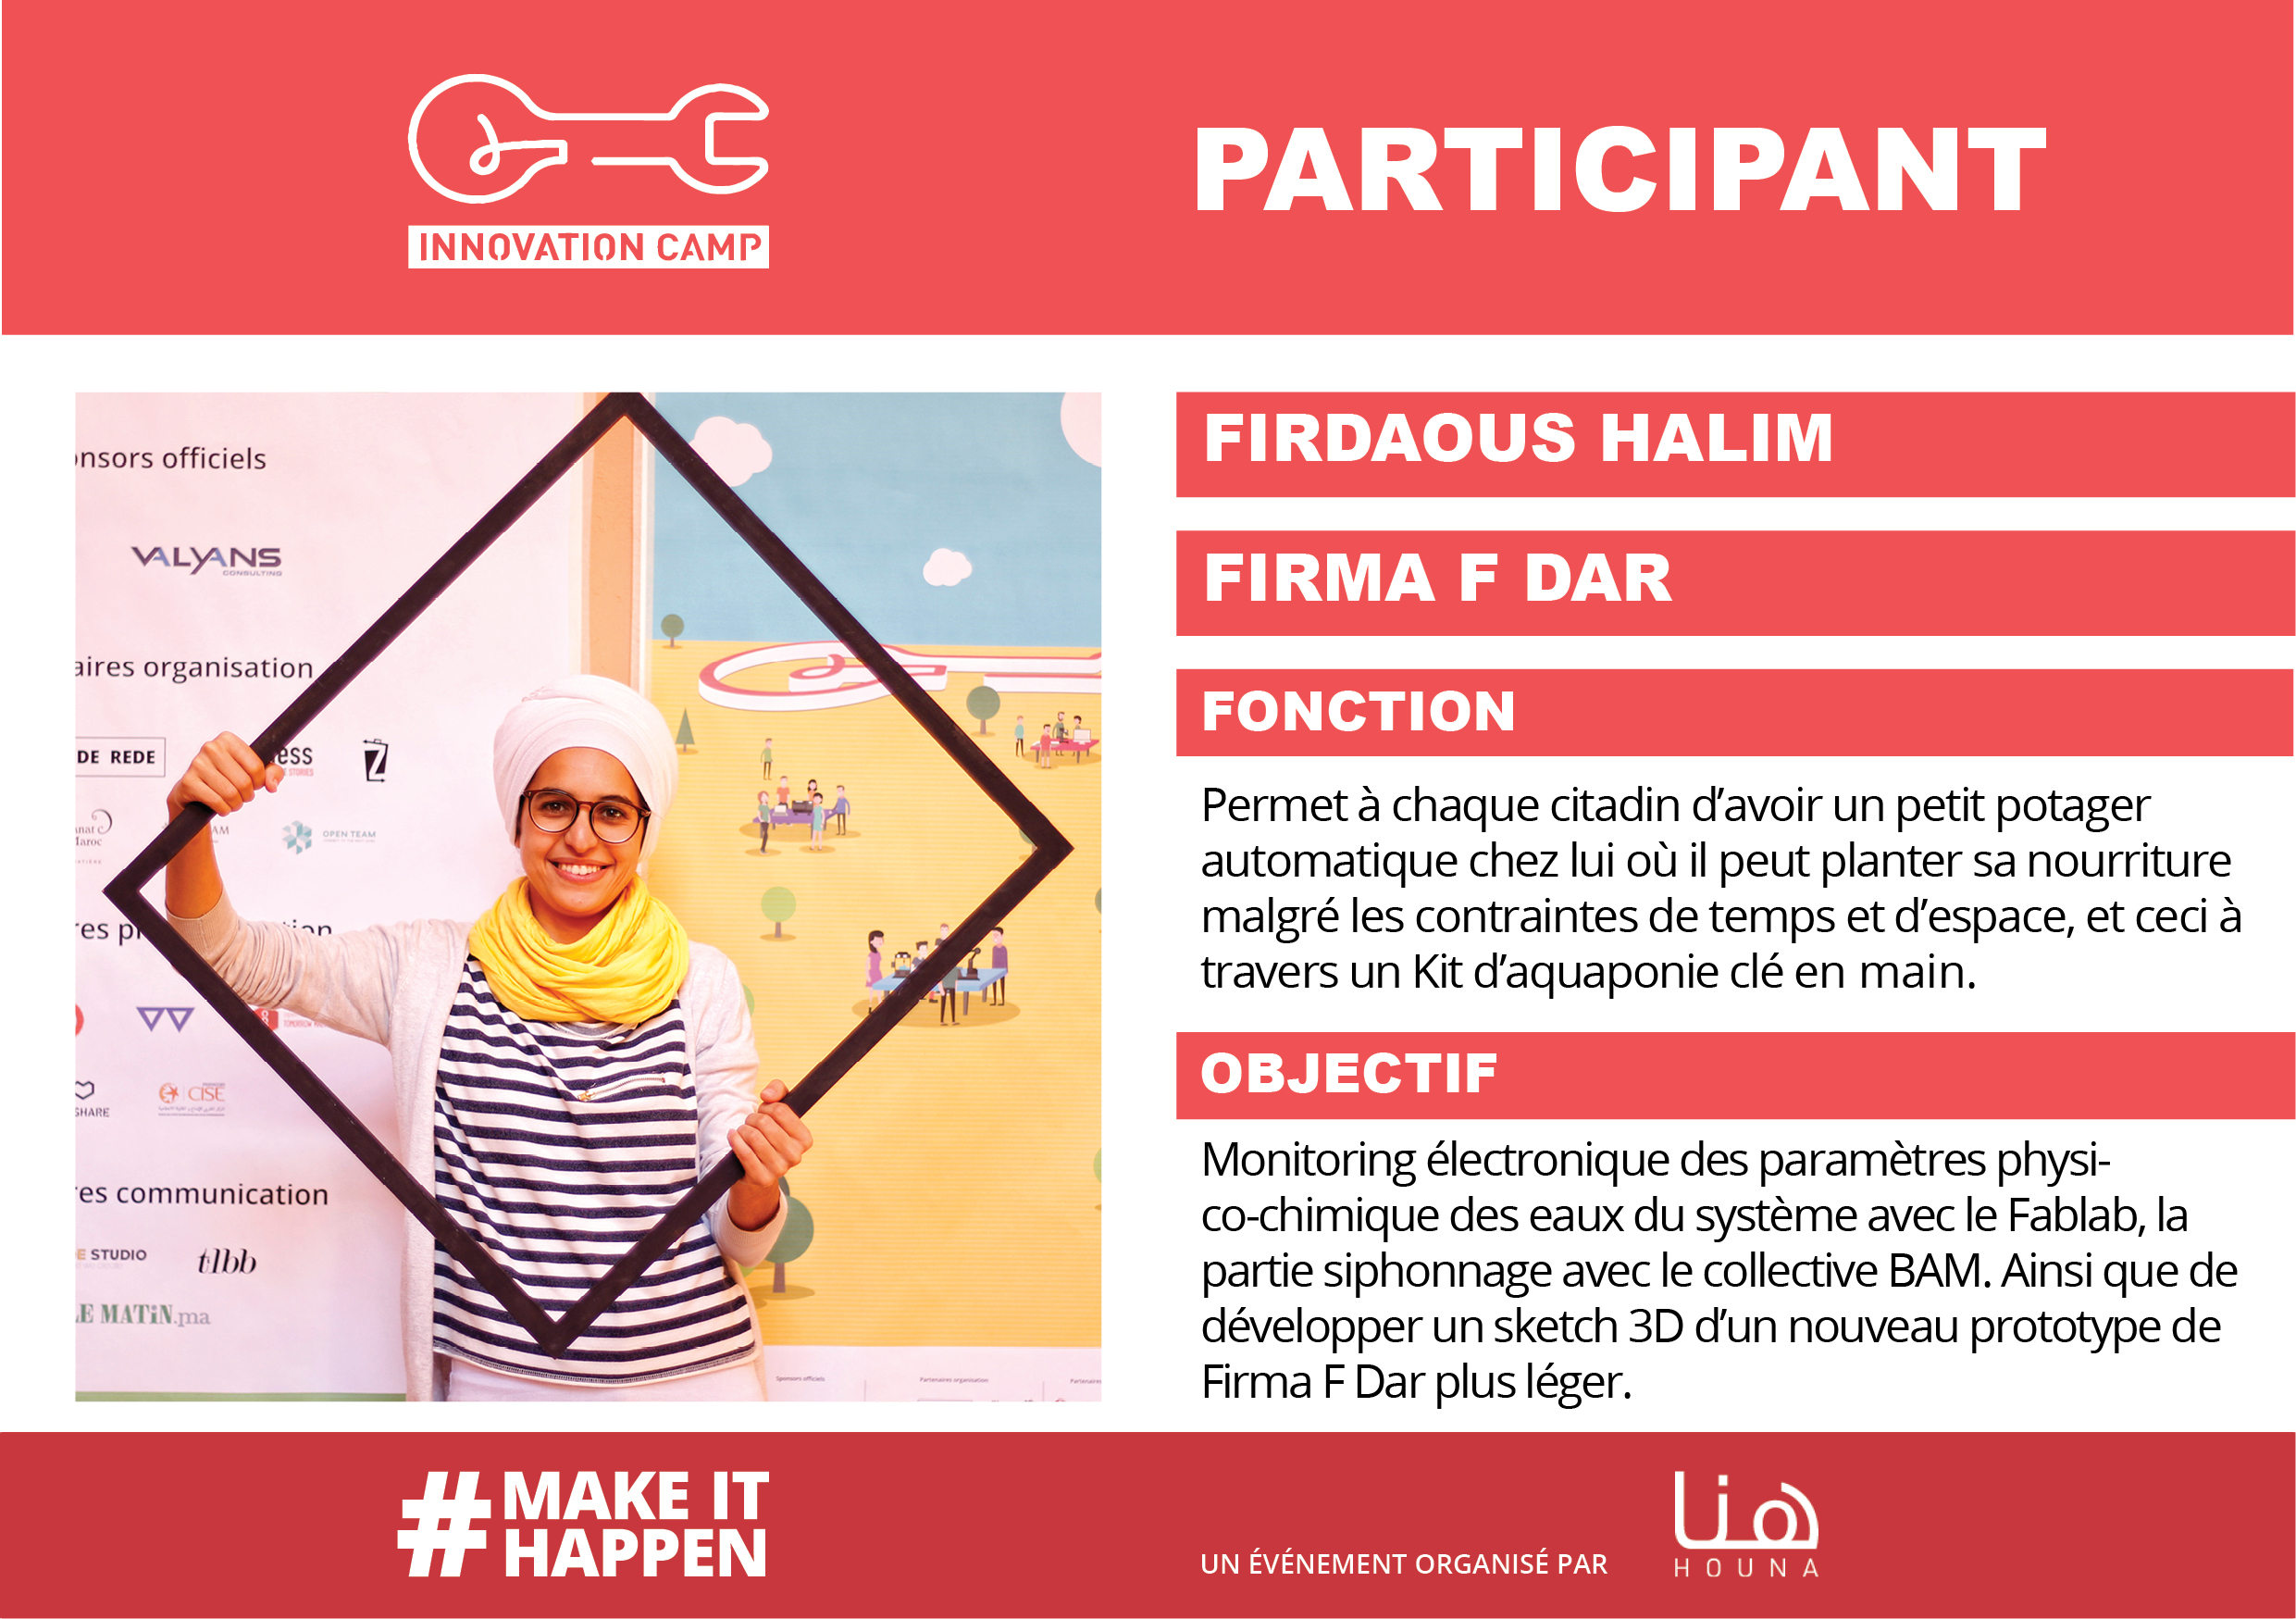 Firdaous Halim - plateforme collaborative - houna